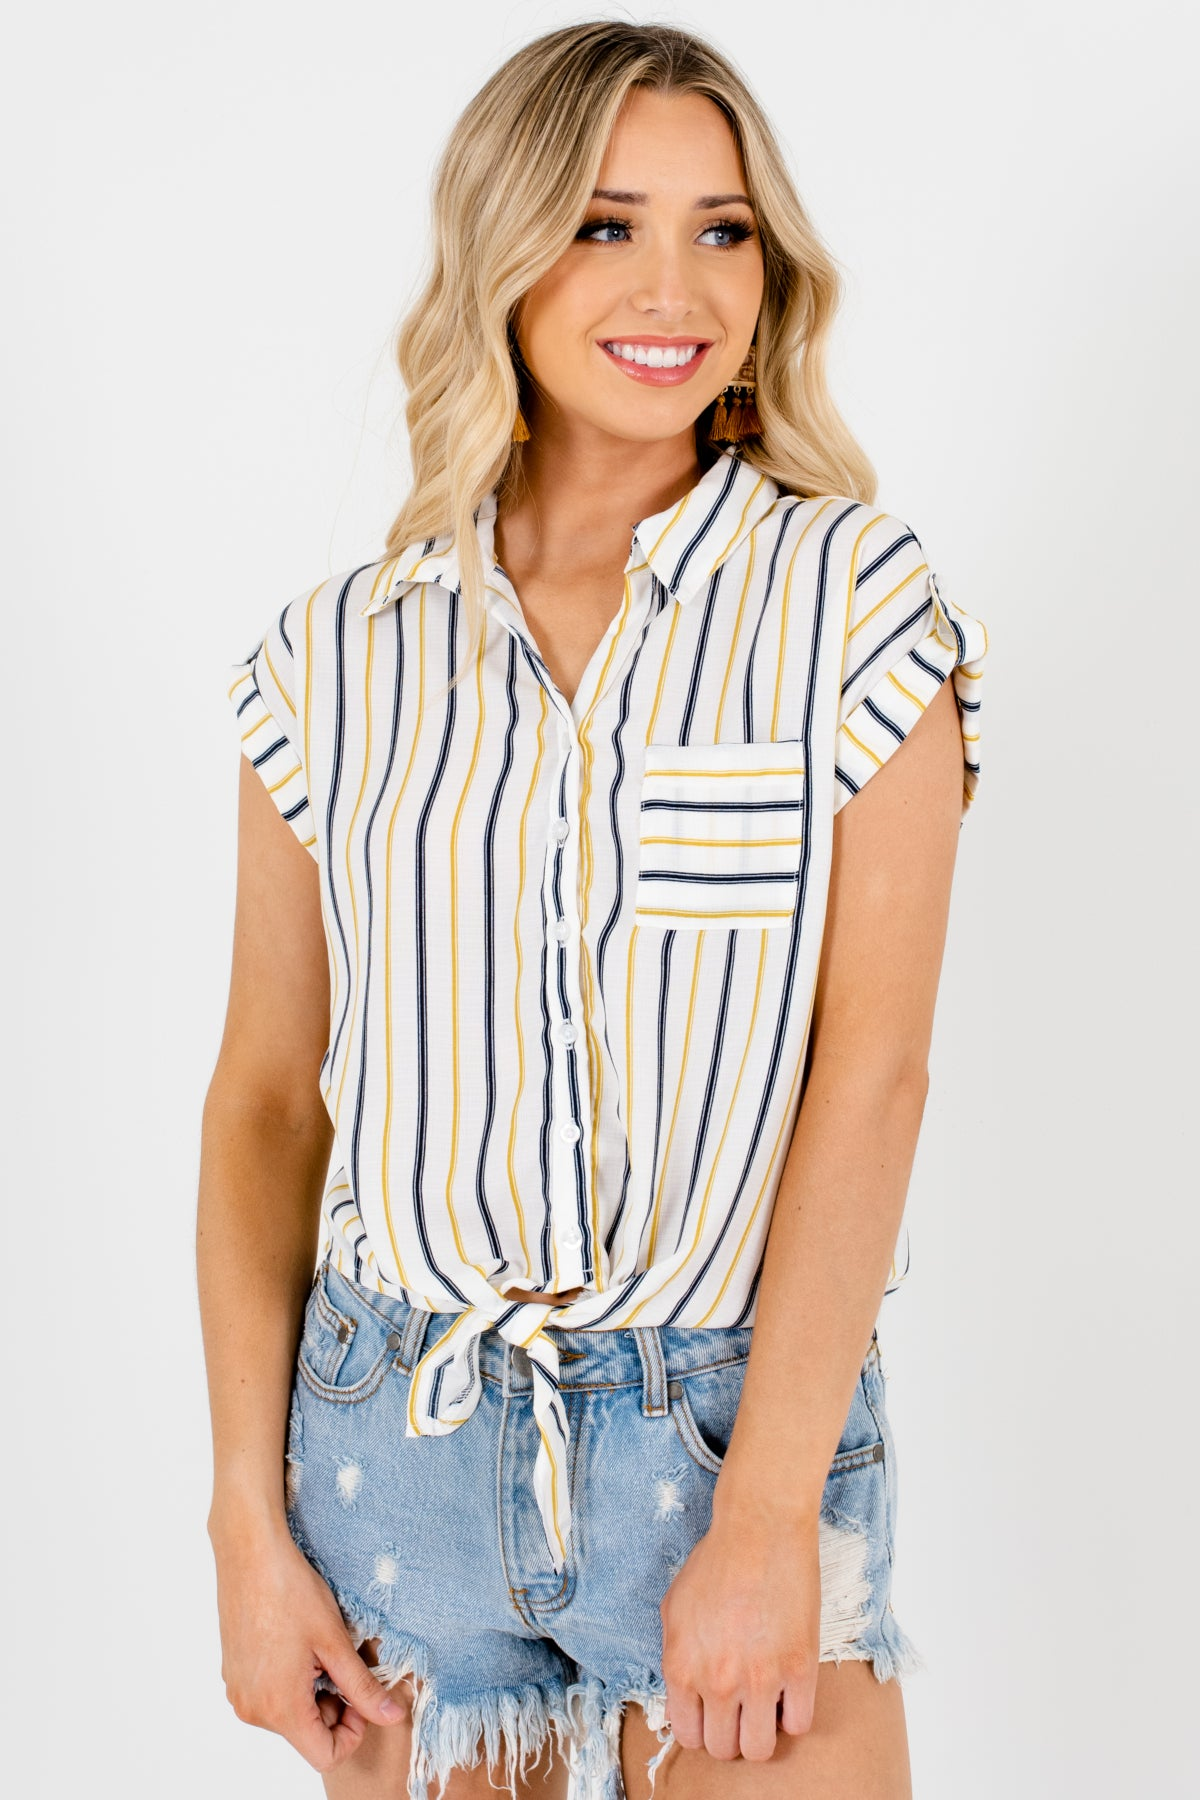 White Navy Yellow Striped Button-Up Shirts Affordable Online Boutique